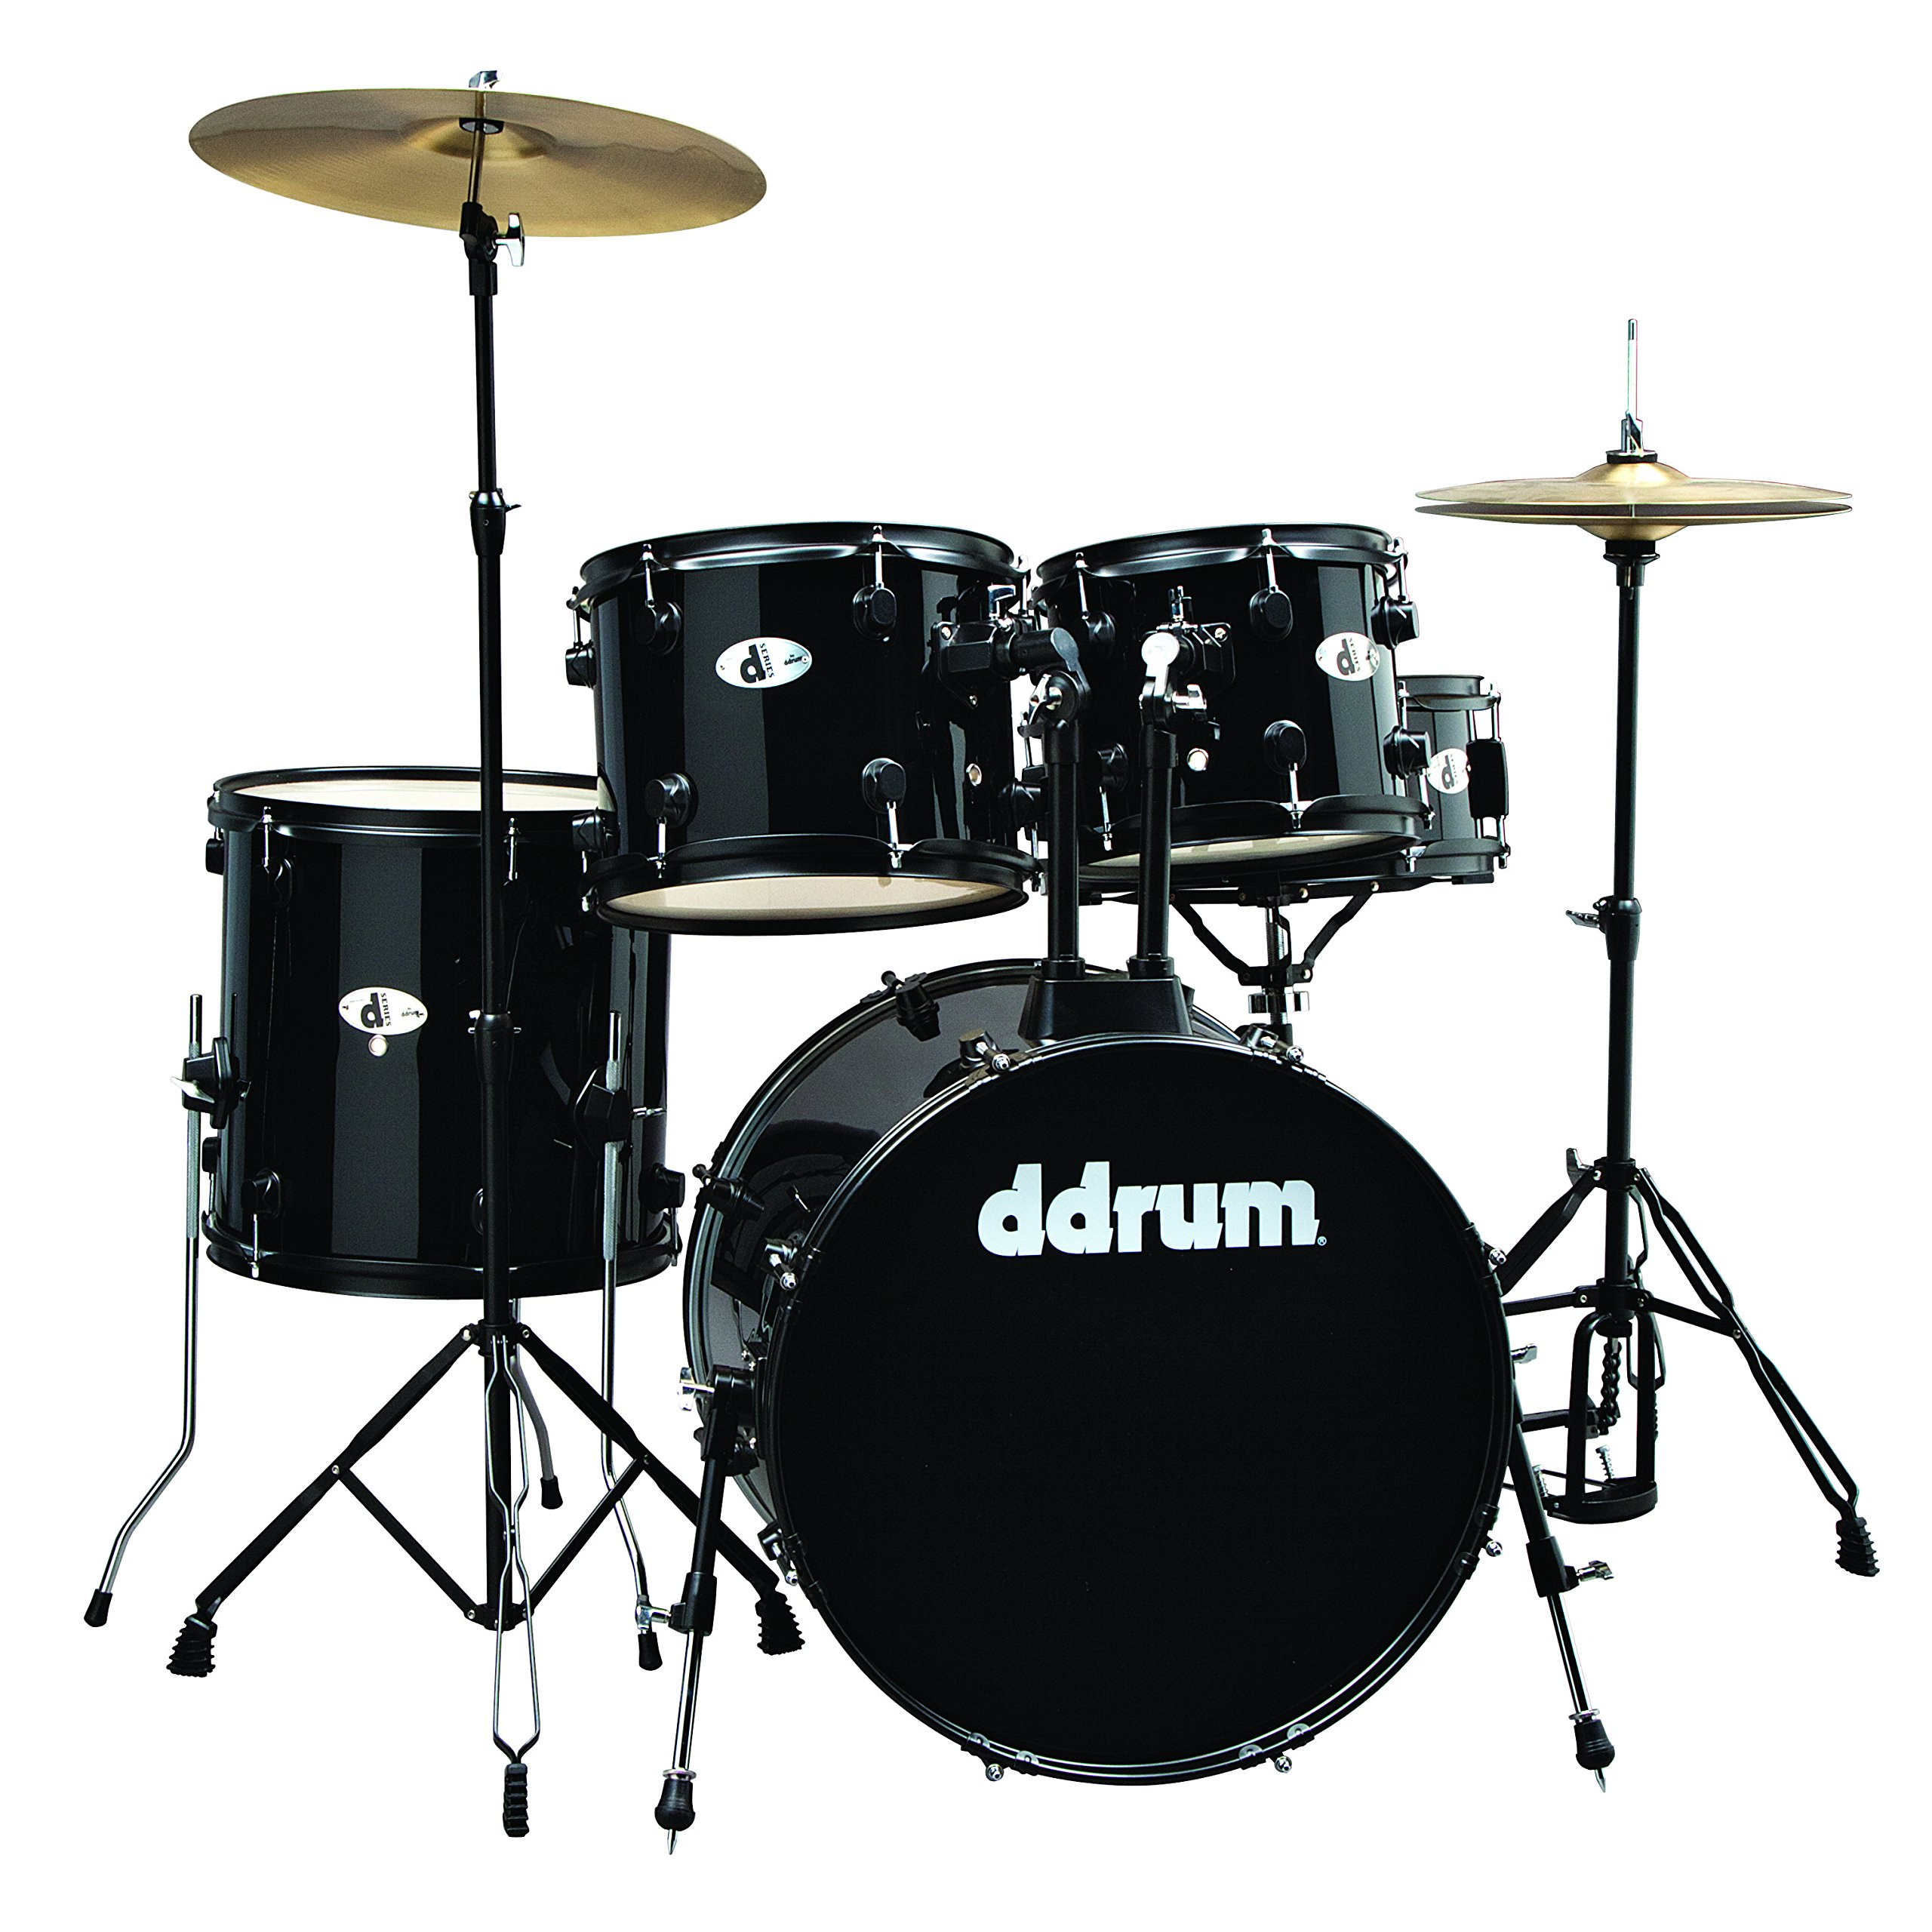 ddrum D120B MB D Series Drum Set 5 Piece Complete, Black